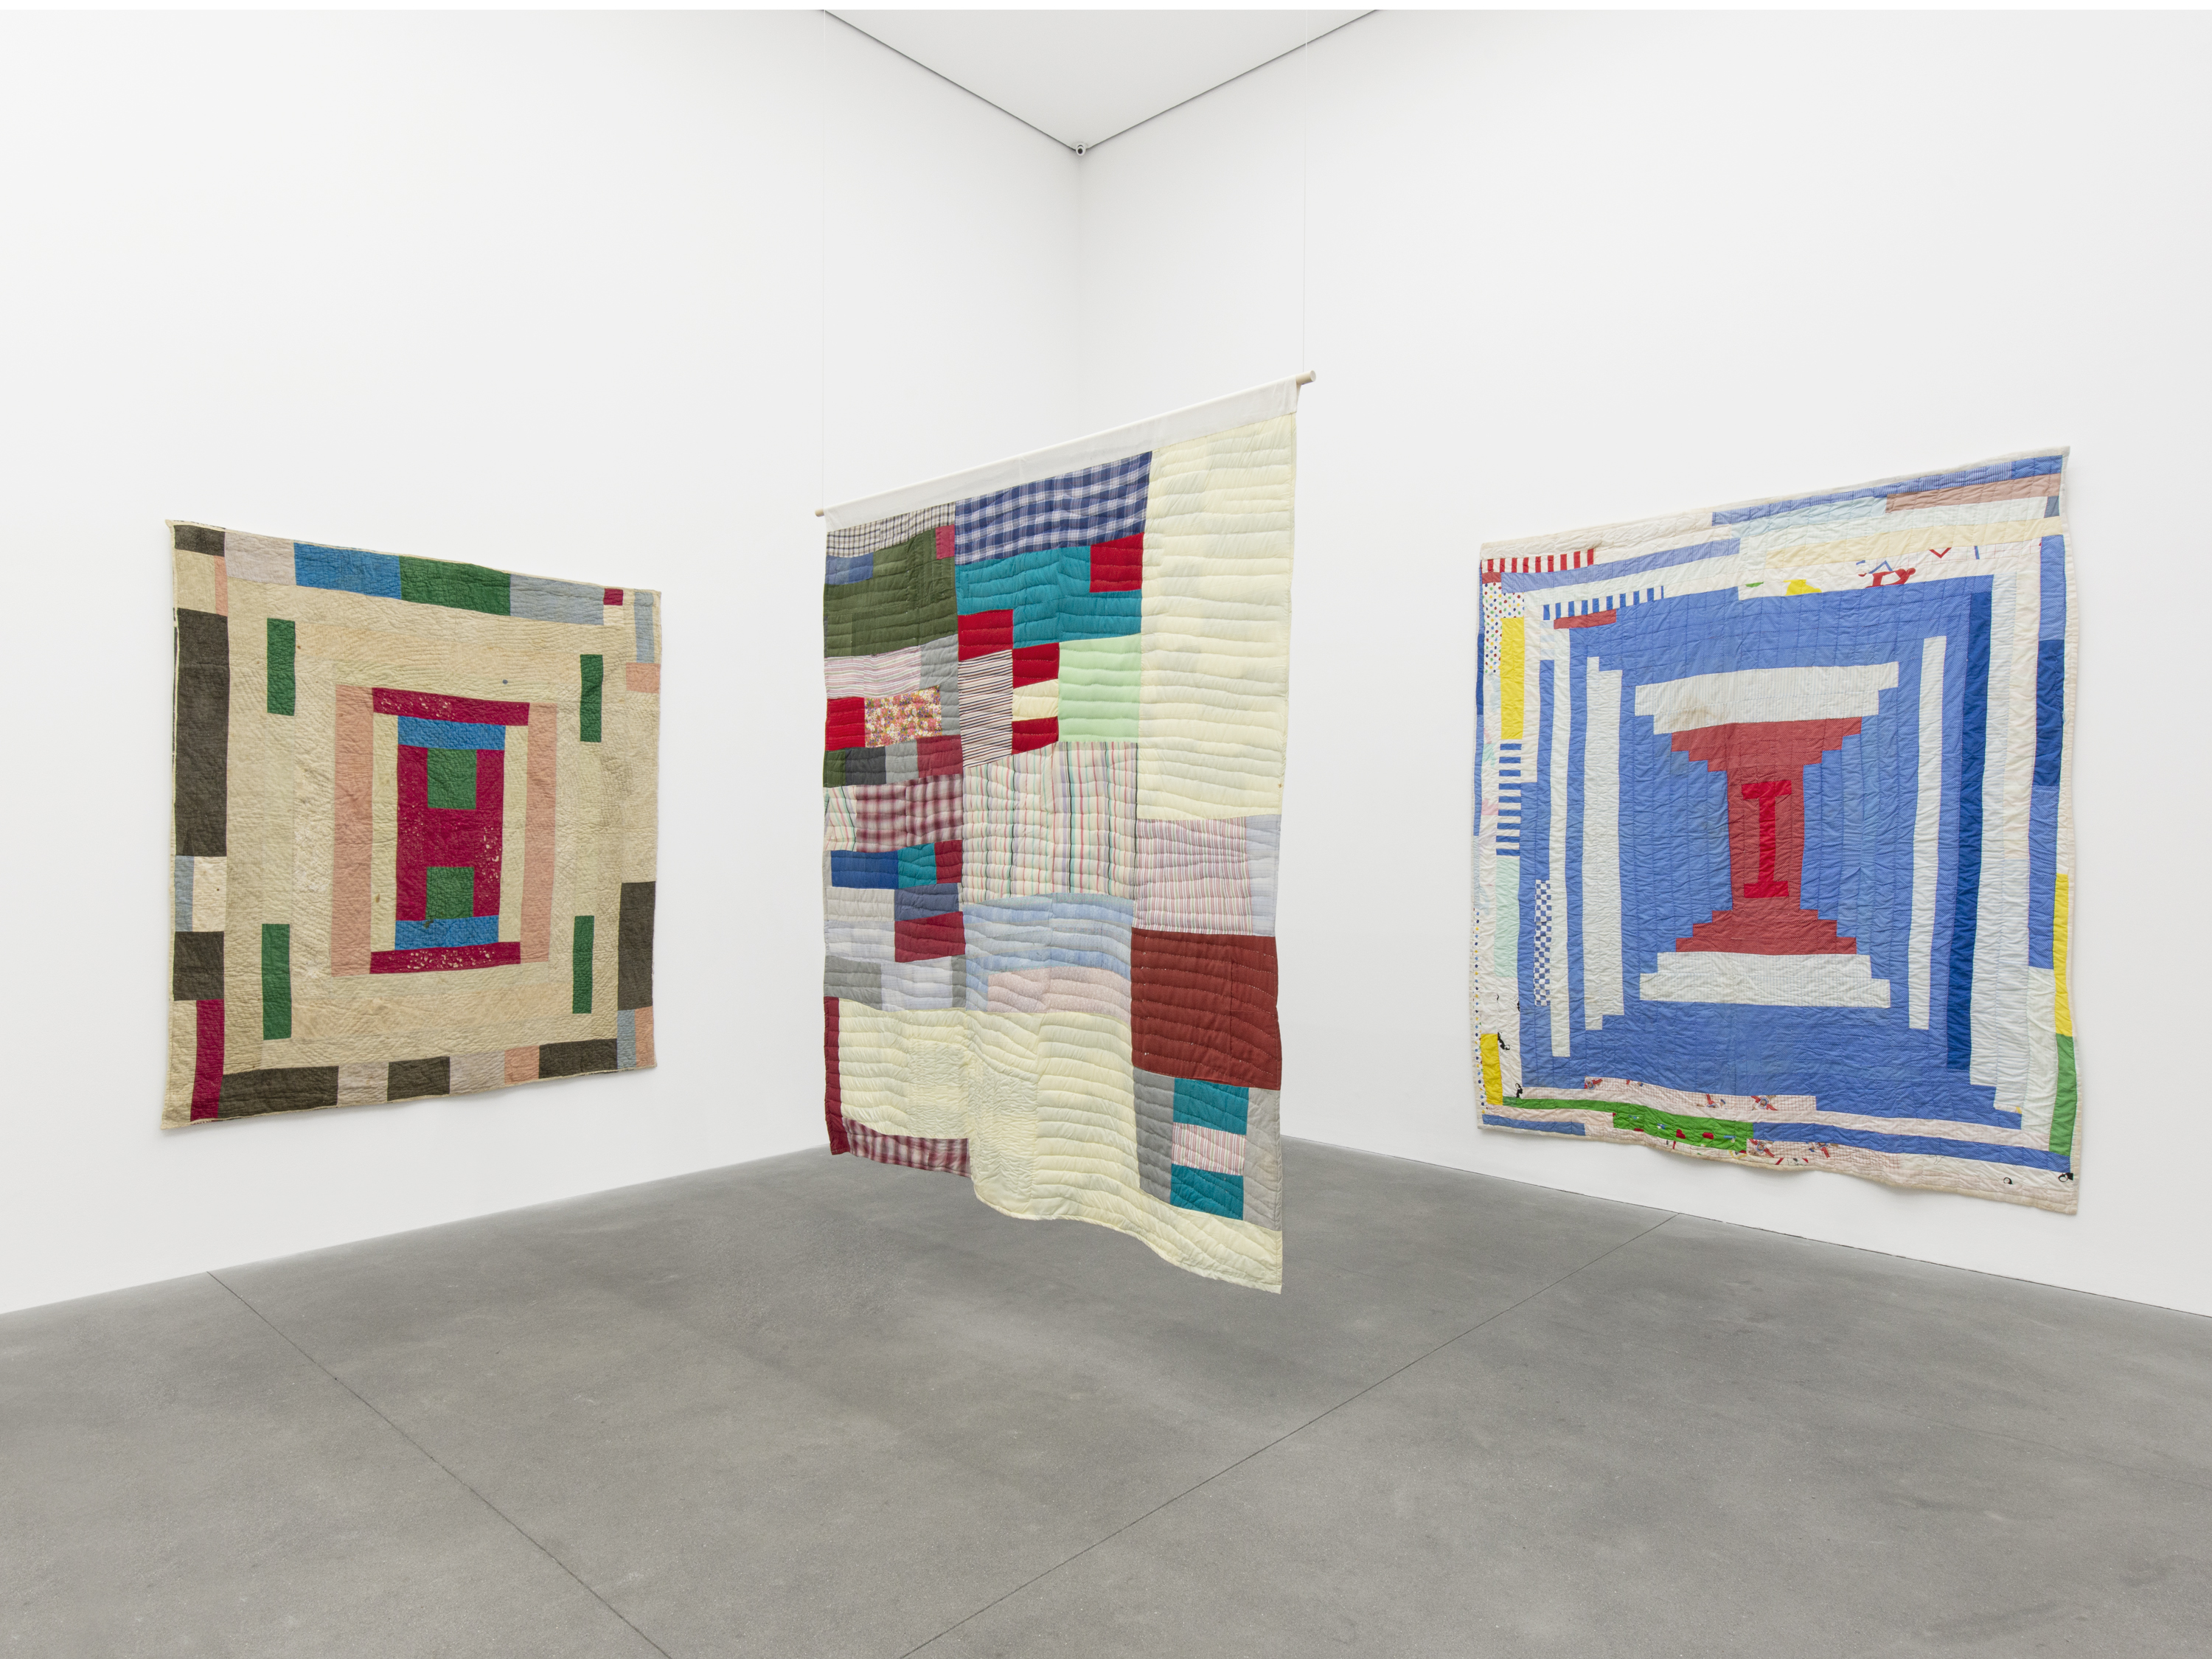 Installation View 1, THE GEE'S BEND QUILTMAKERS, Alison Jacques Gallery, 2021, All images courtesy of Alison Jacques Gallery